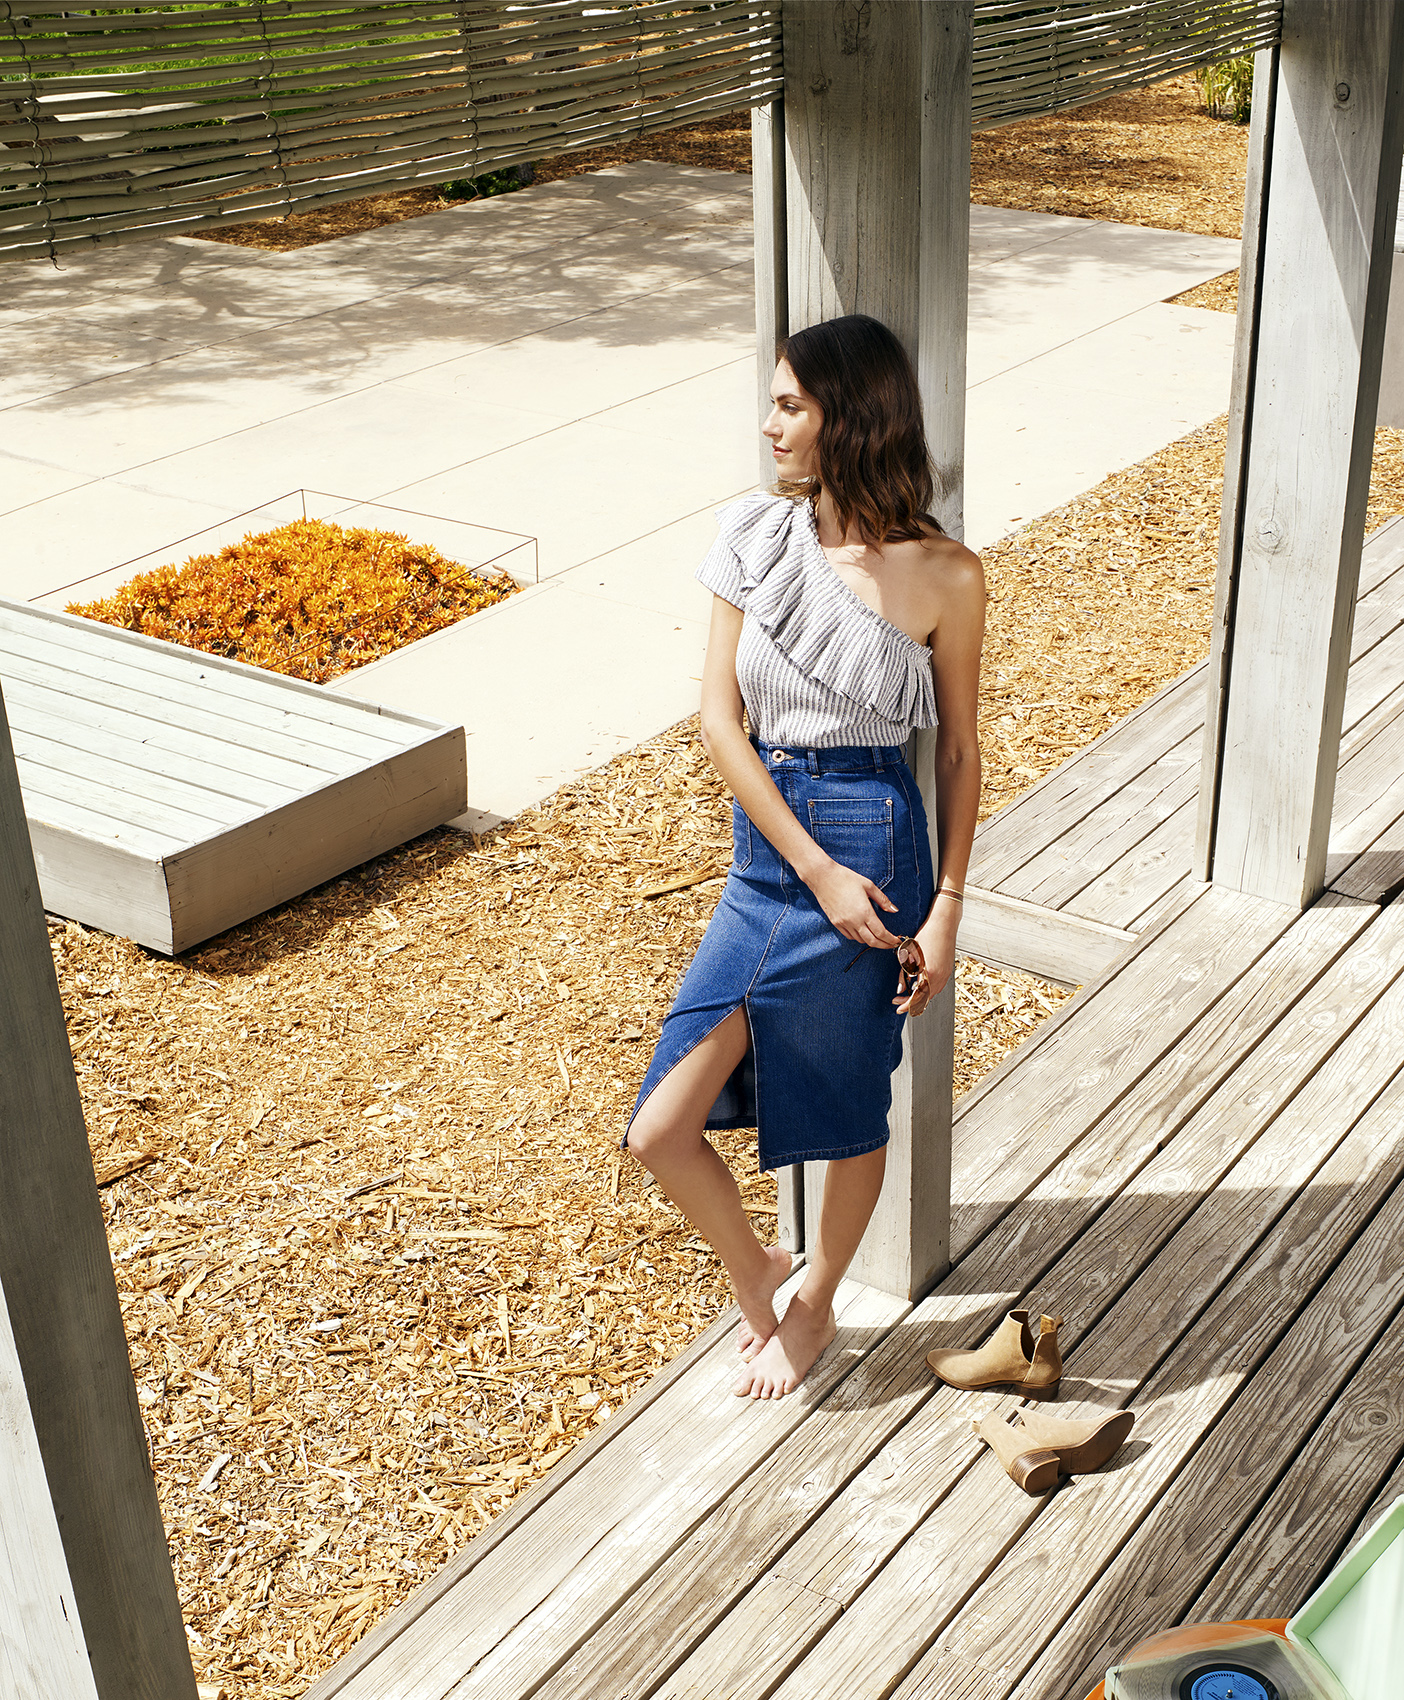 Model on porch in summer clothes